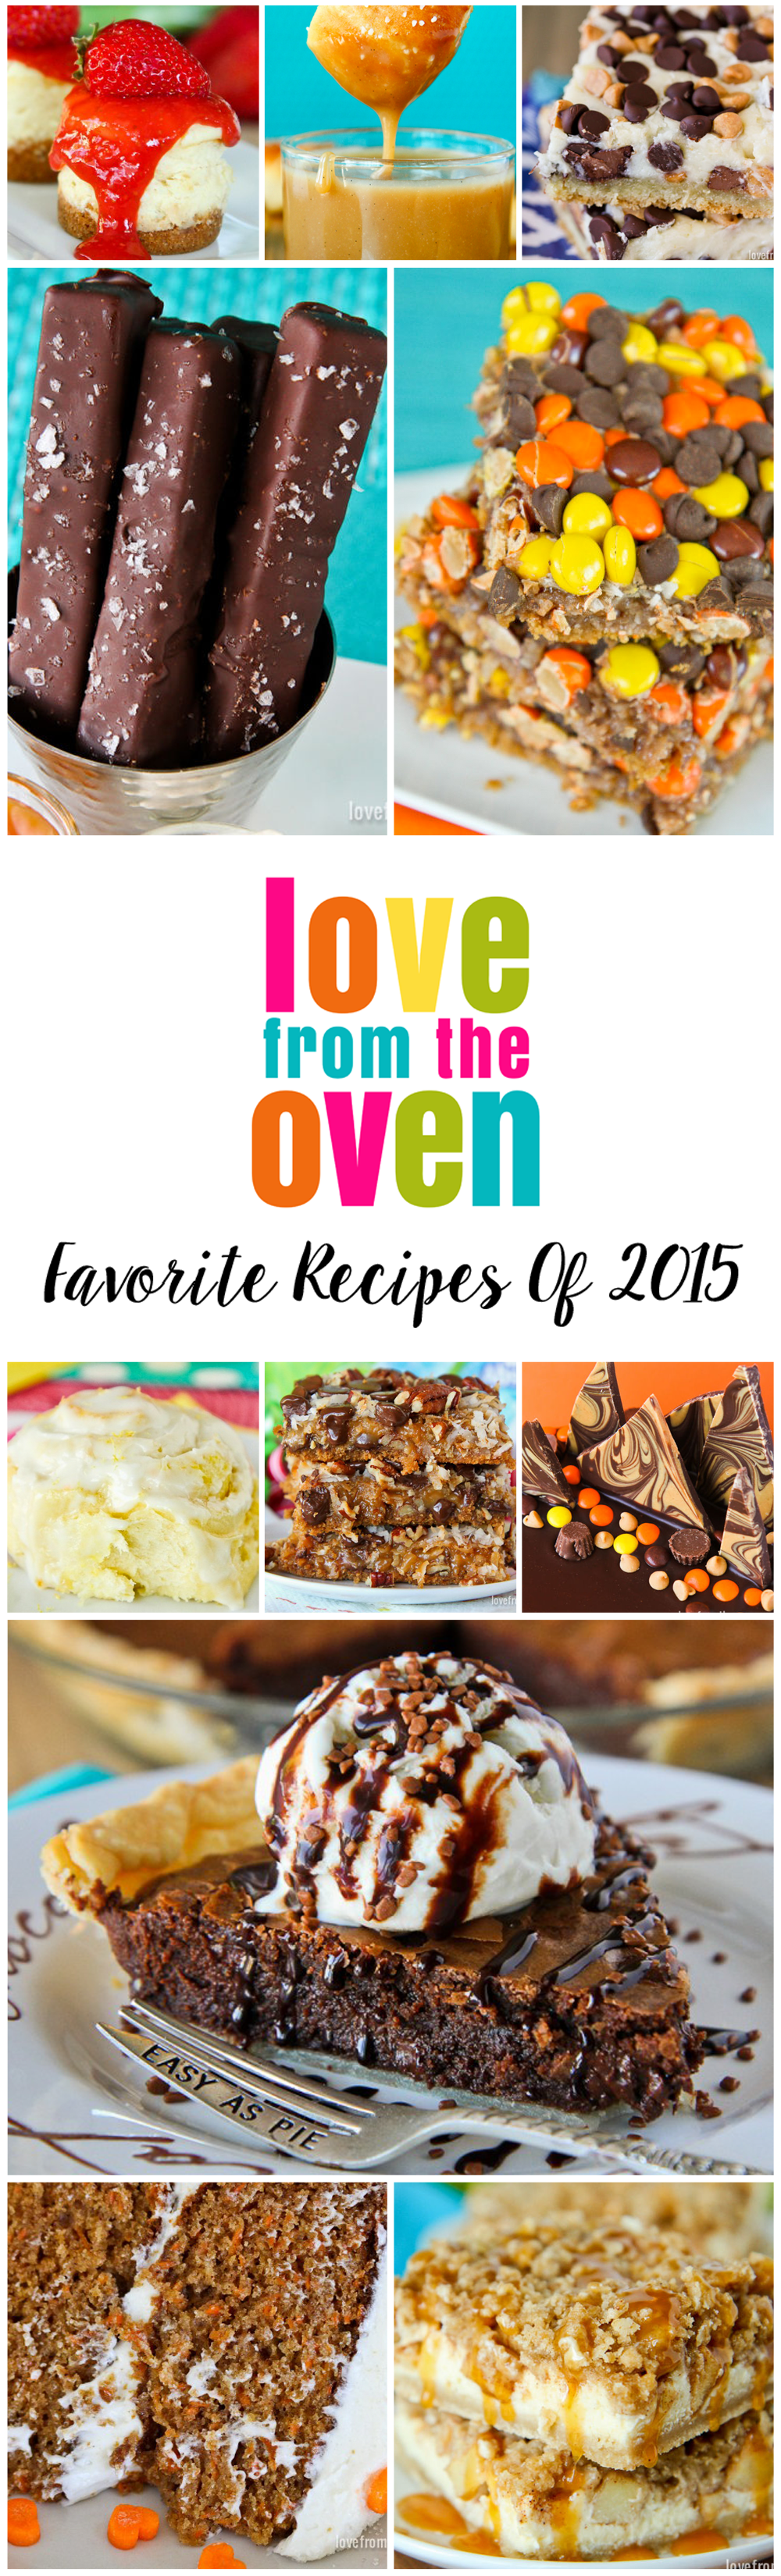 Best Recipes of 2015 at Love From The Oven